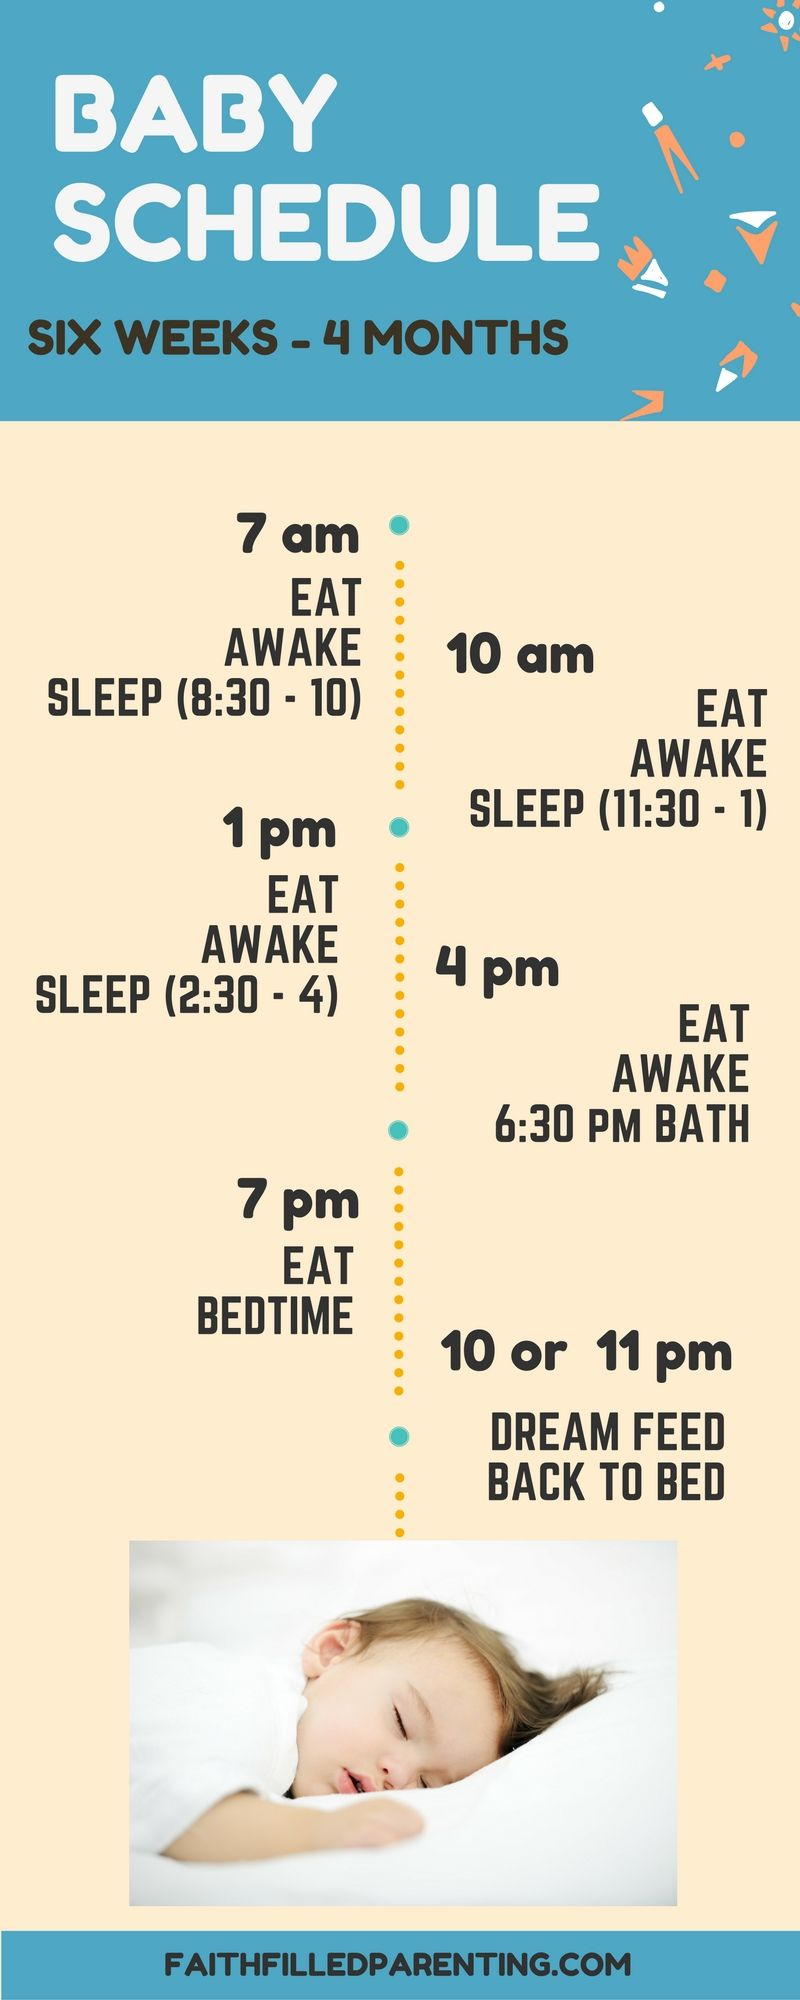 baby sleep schedule 6 weeks - 4 months | sleeping | pinterest | baby